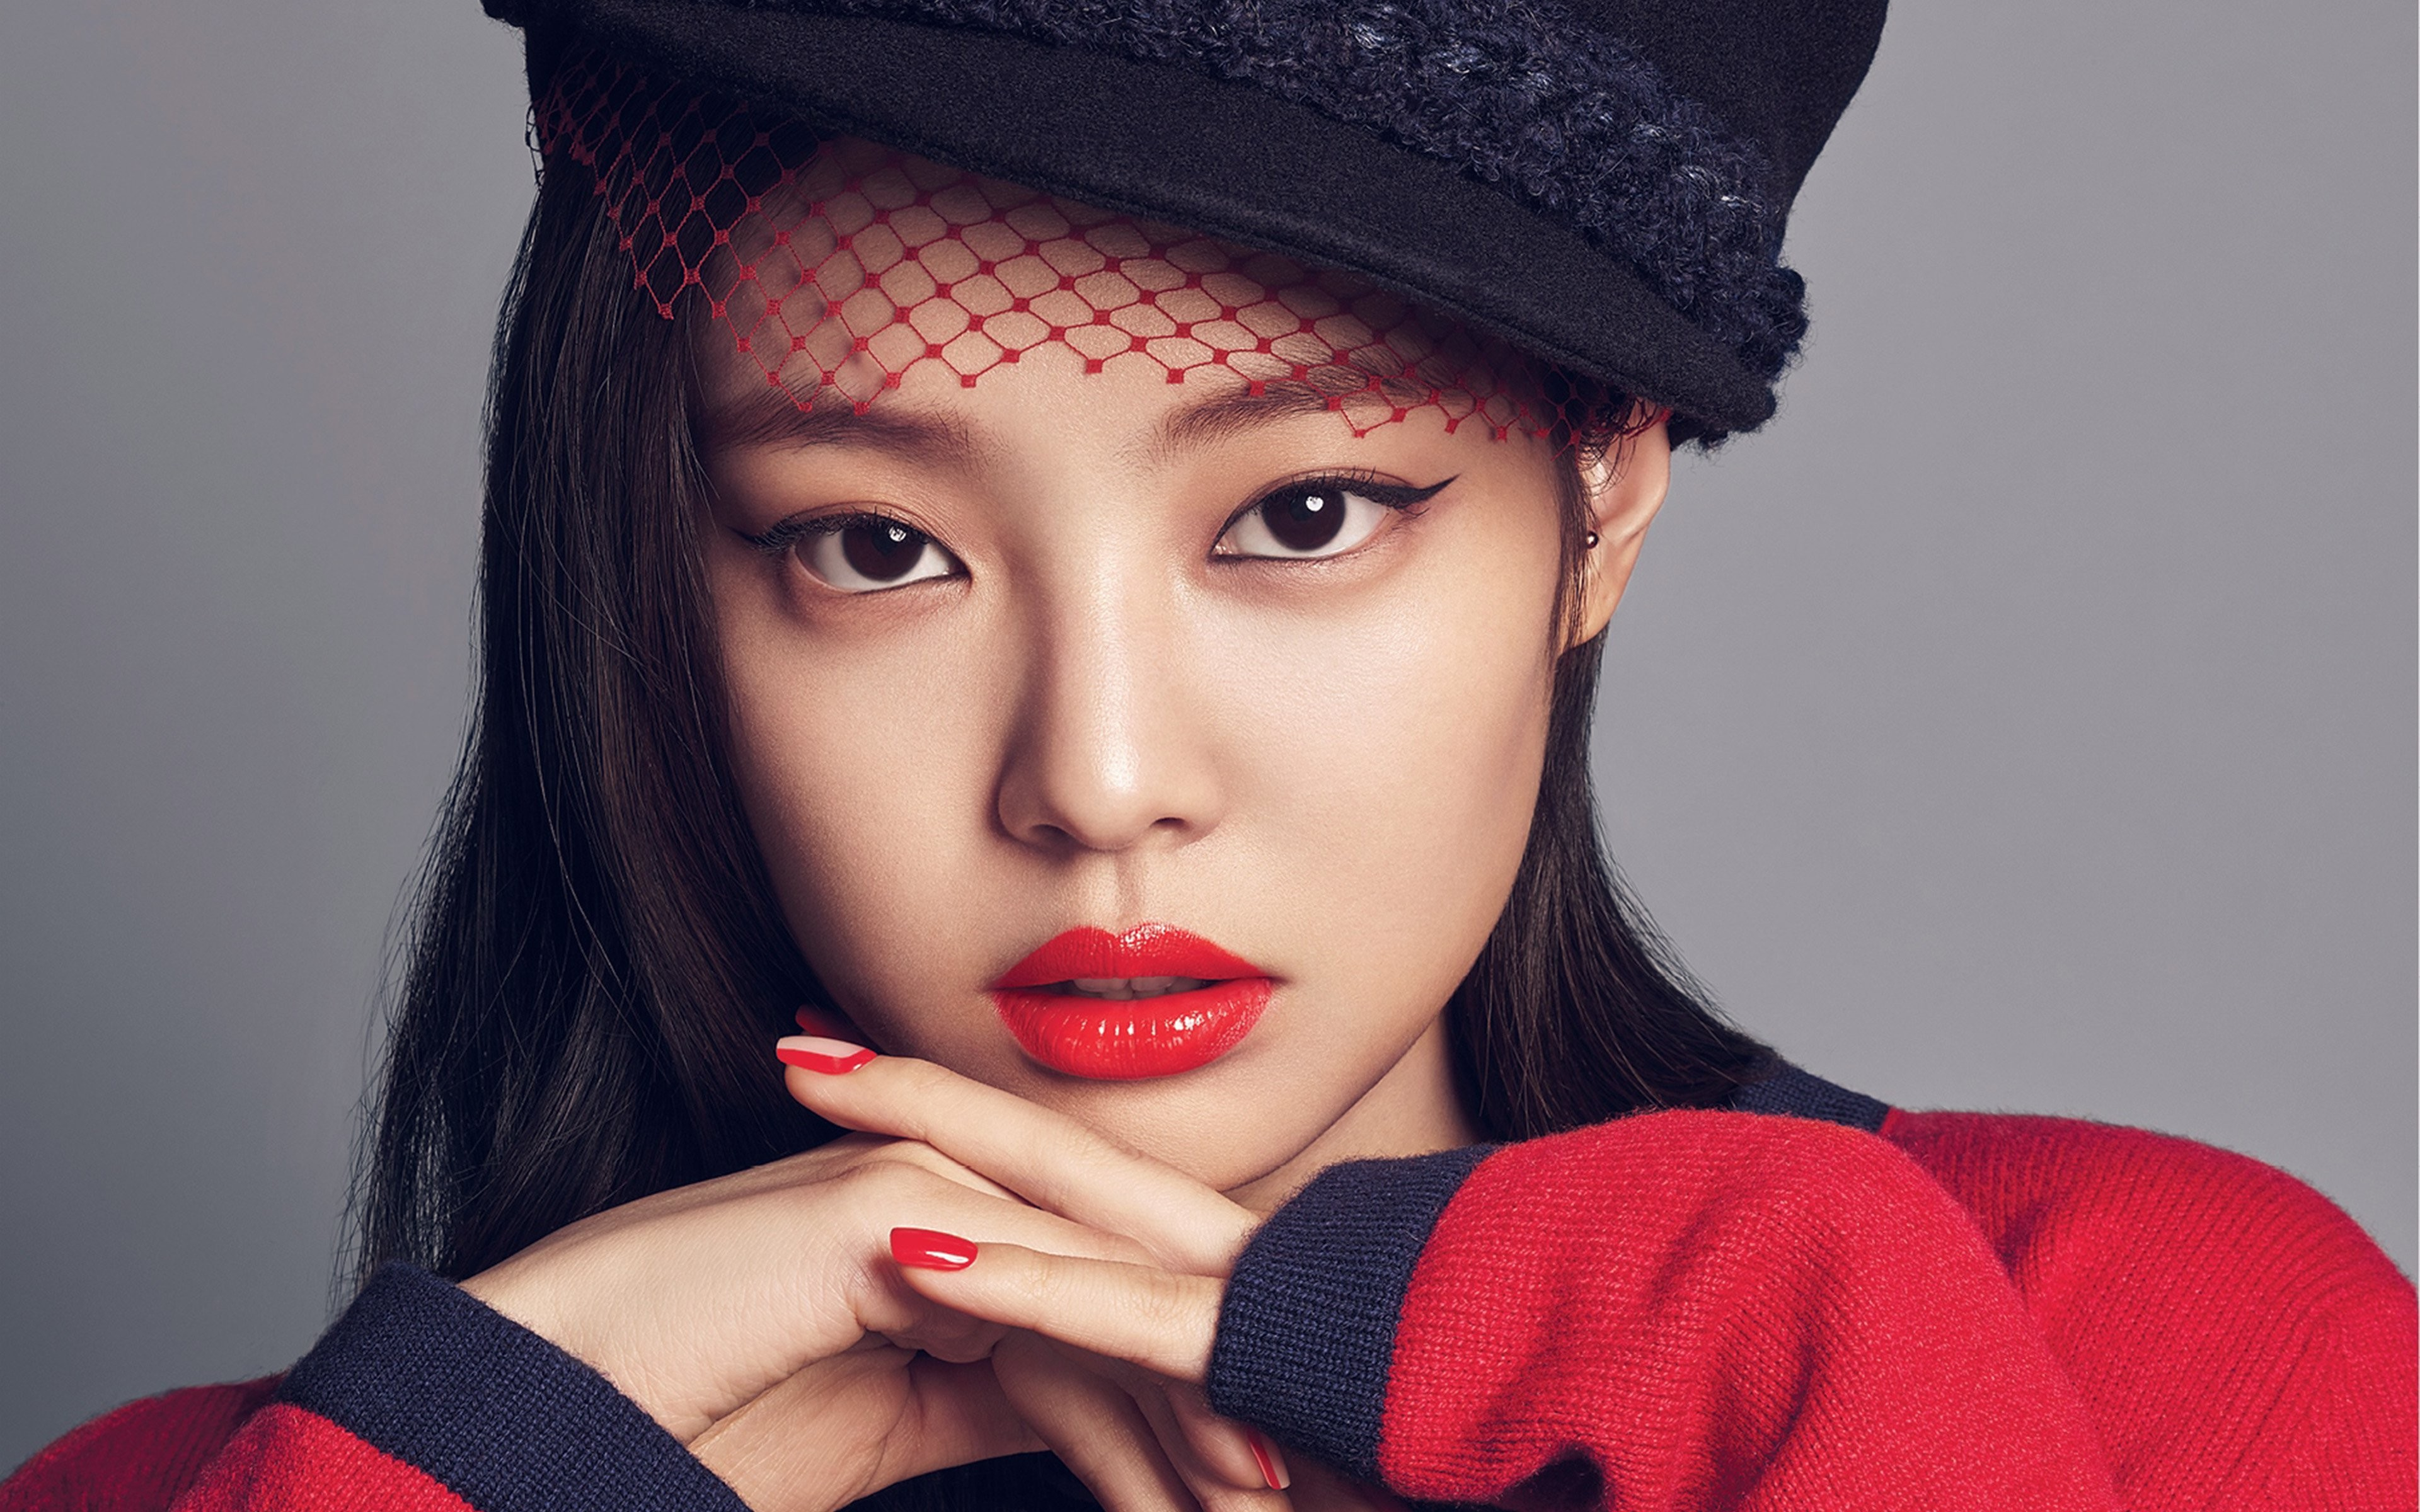 df713f2cdb375 Jennie from Blackpink – New Zealand-raised K-pop singer who, like any good  Cub Scout, just wants to do her best | South China Morning Post